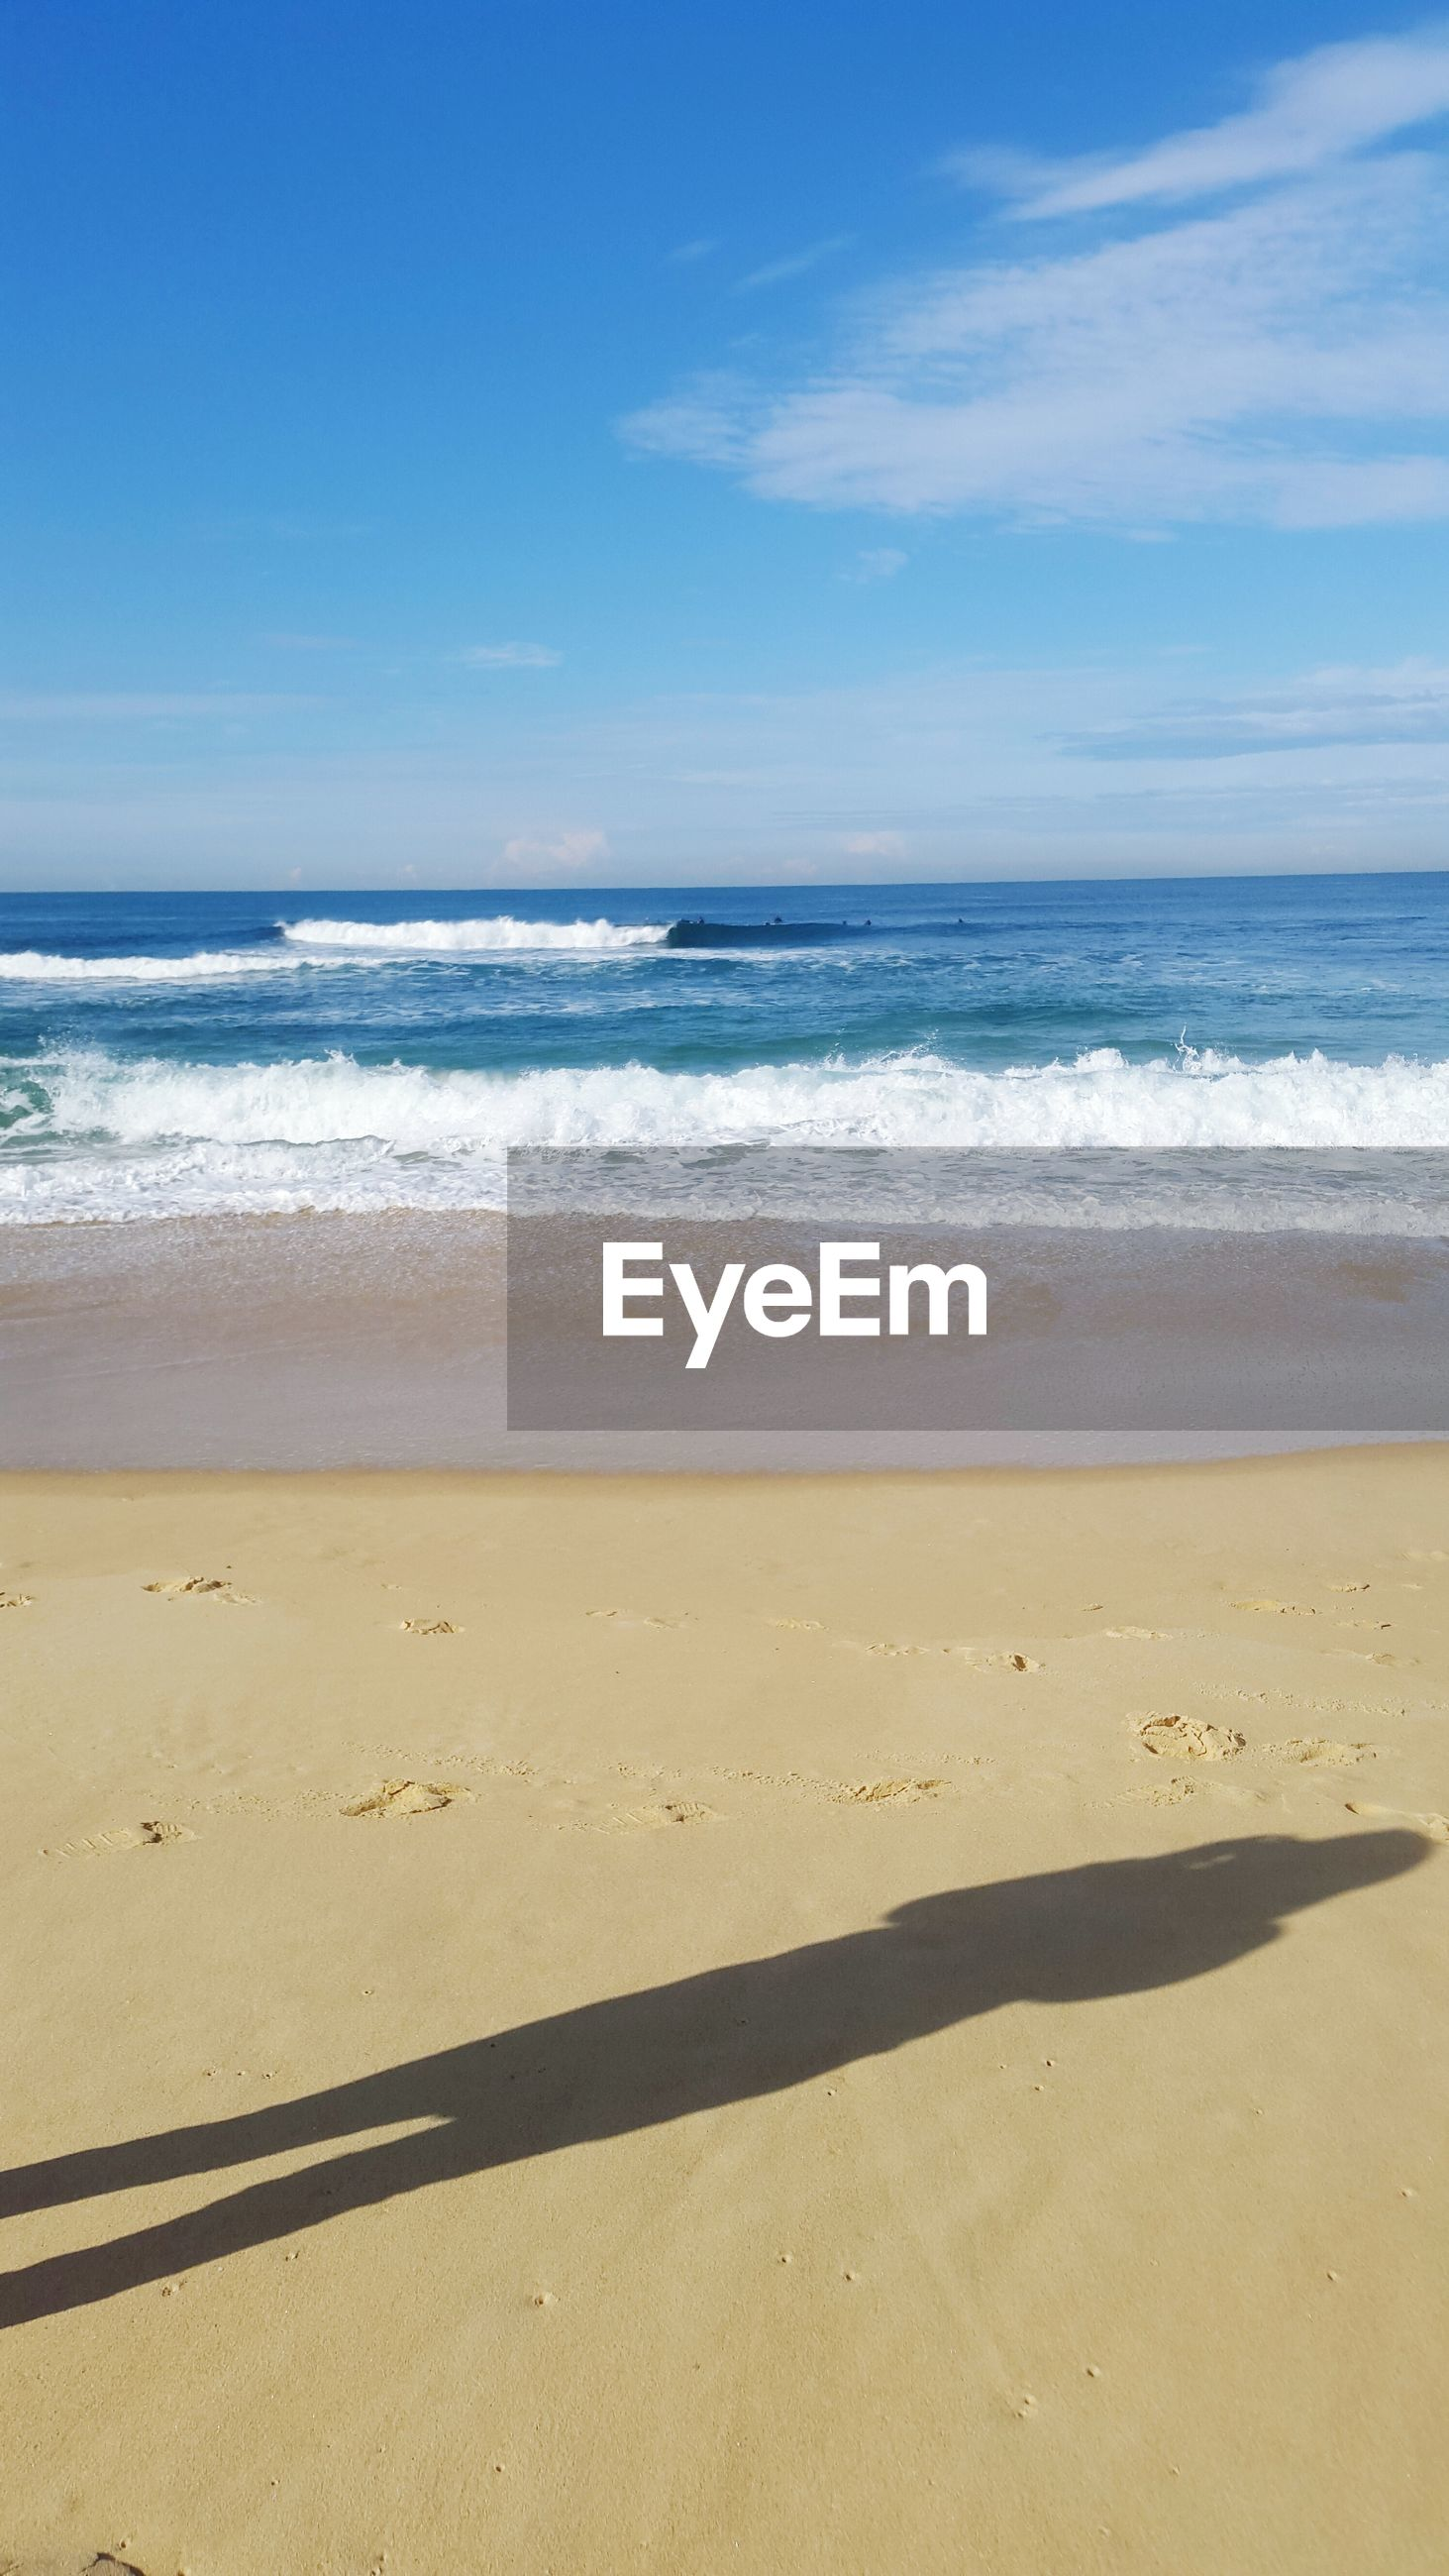 beach, sea, sand, horizon over water, shore, water, sky, tranquility, tranquil scene, scenics, beauty in nature, wave, nature, idyllic, footprint, surf, coastline, day, remote, outdoors